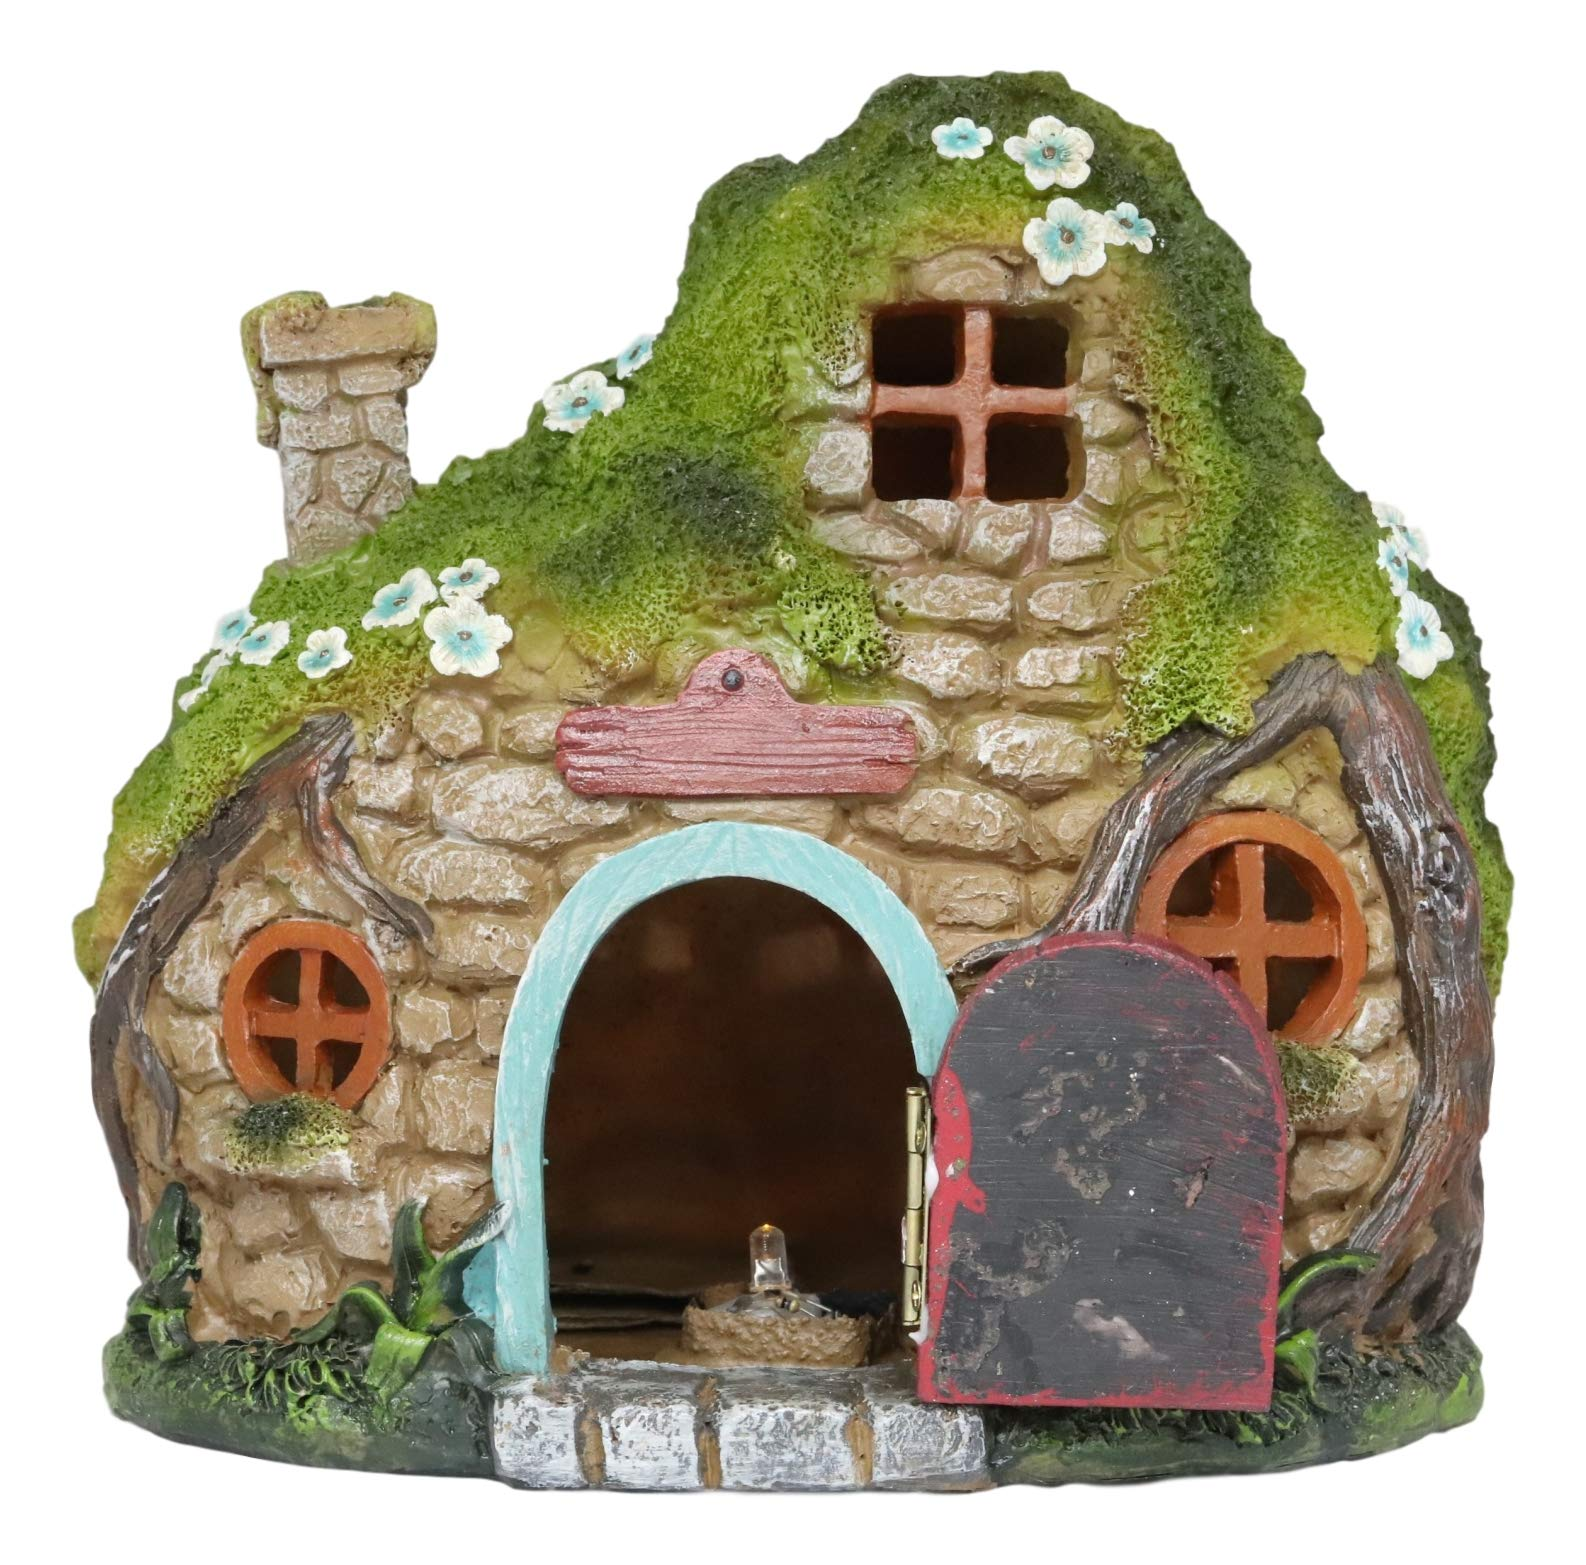 Ebros LED Light Up Miniature Enchanted Fairy Garden Cozy Stone Cottage House with Moving Door and Chimney Figurine Made of Resin Fairies Pixies DIY Mini Whimsical Display Home Decor Statue Sculpture